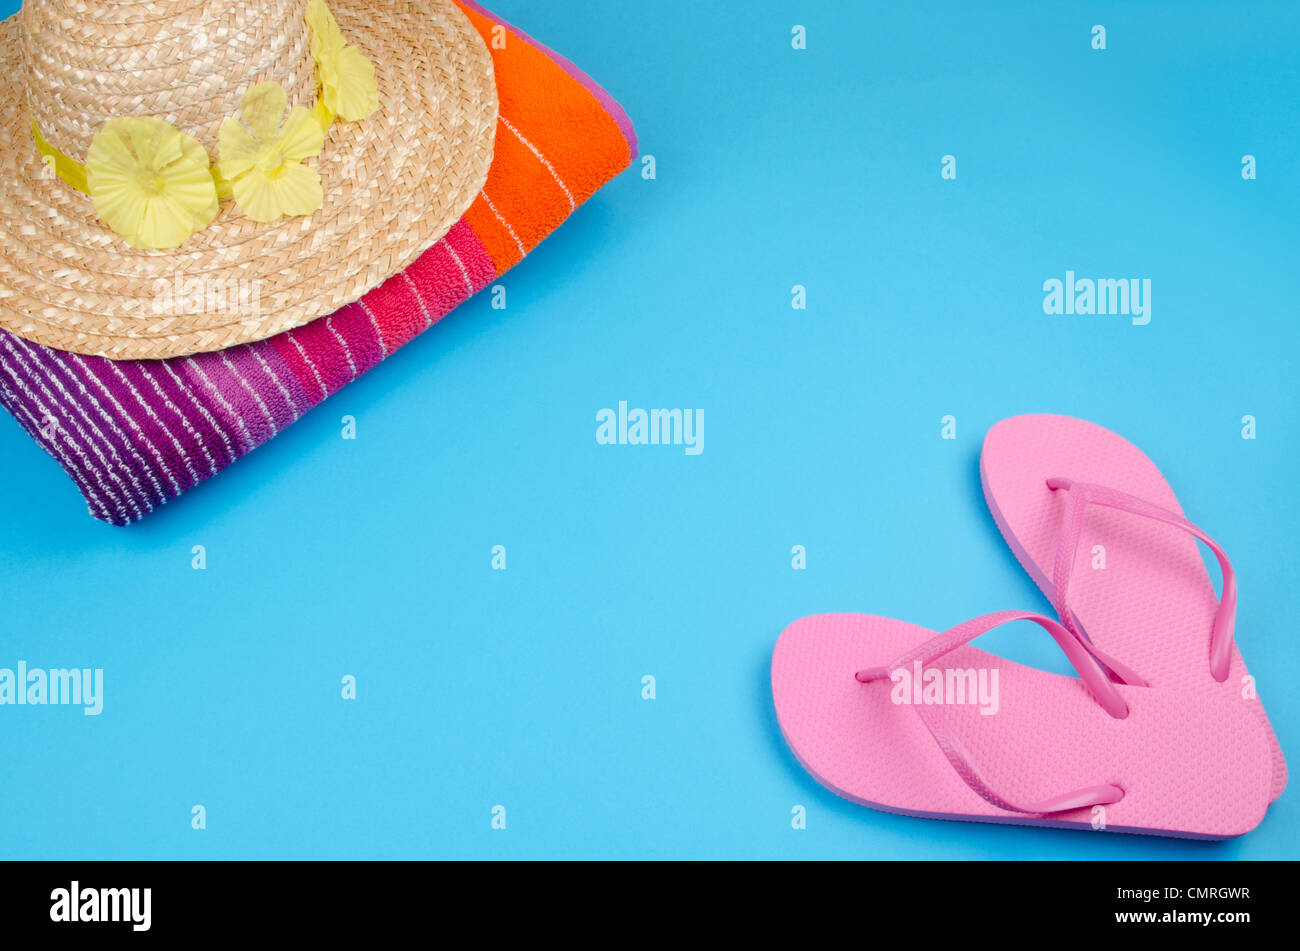 47fa3c0a0ae7c1 Pink flip-flops on a blue background with a sun hat and beach towel -